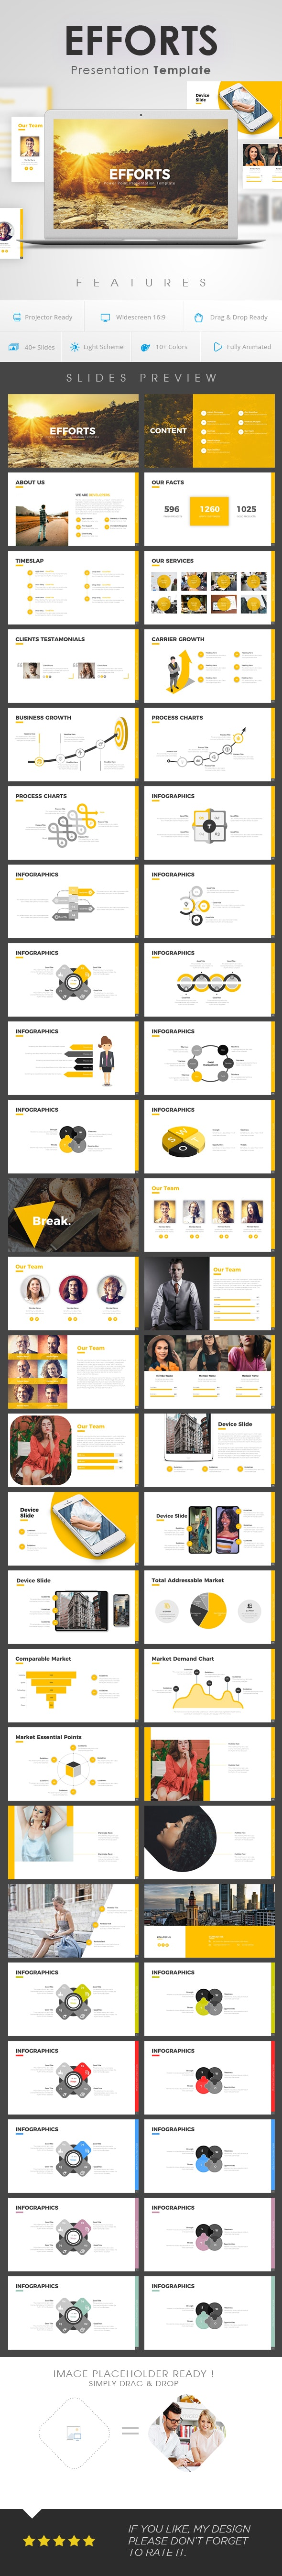 Efforts Power Point Presentation Template - Business PowerPoint Templates